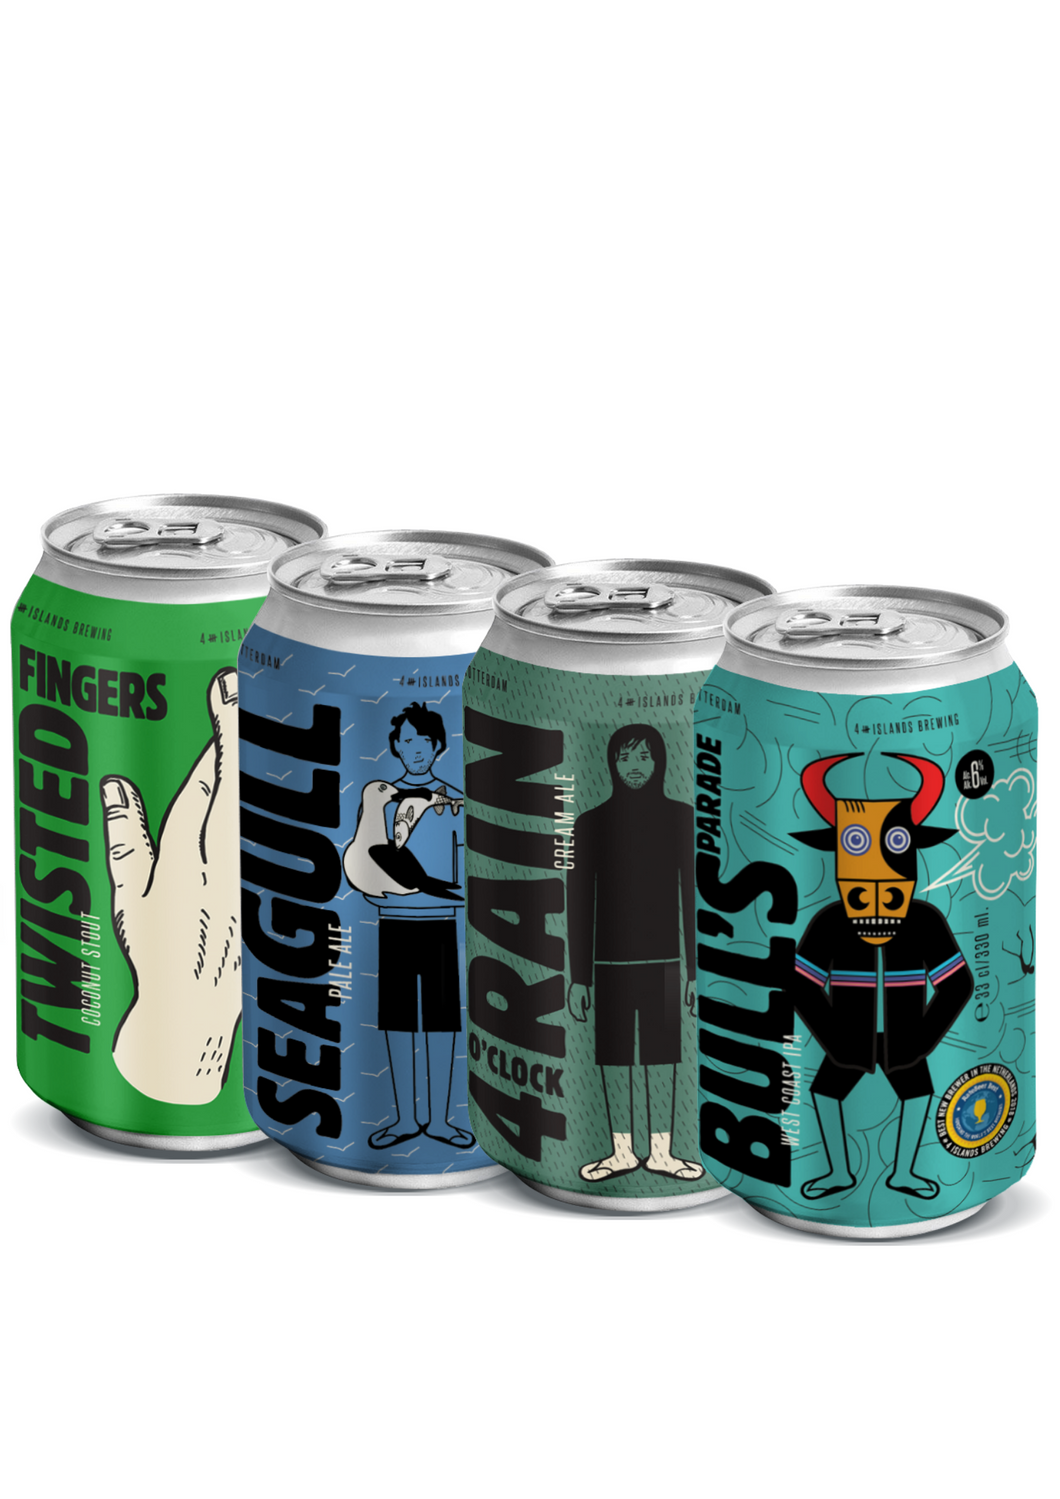 Mixed Beers (4-Pack)